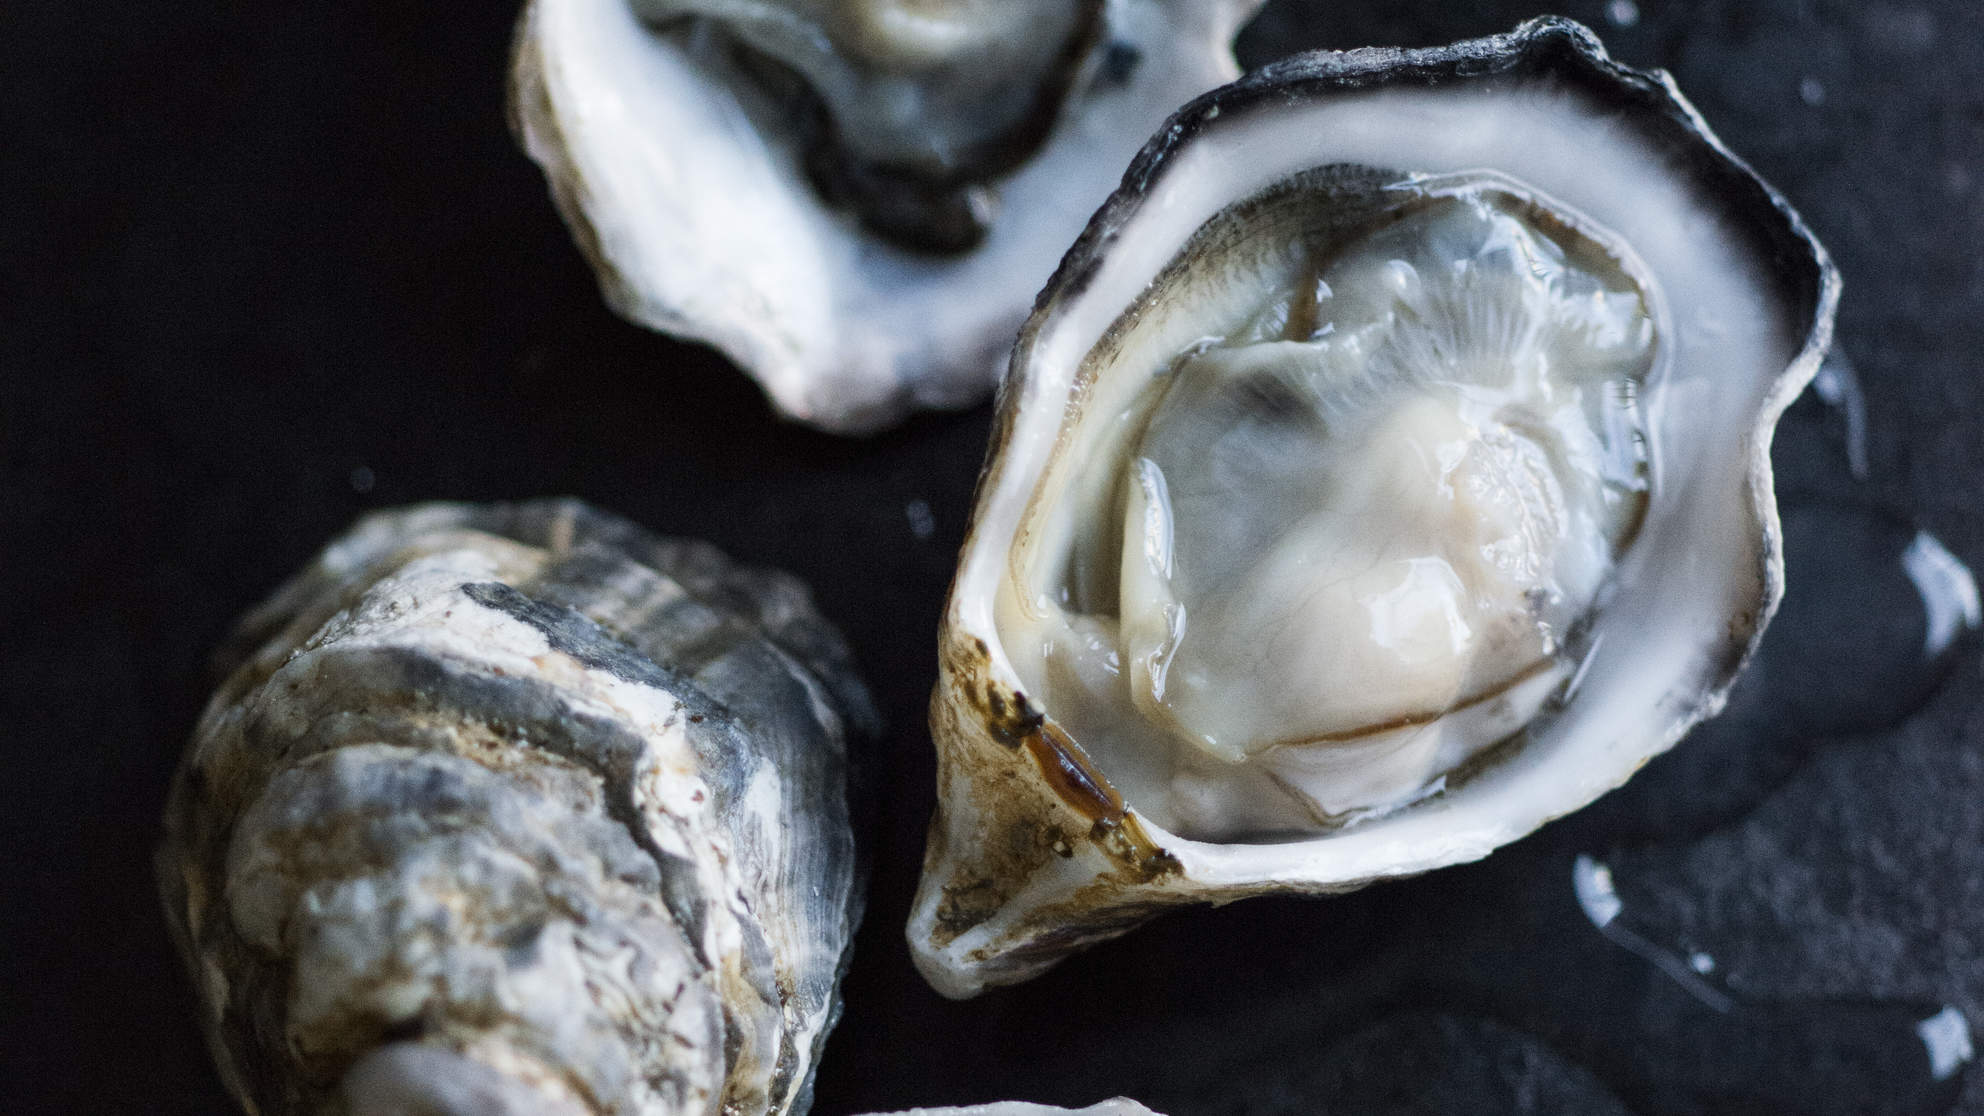 A Man Died From 'Flesh-Eating' Bacteria After Eating an Oyster. Here's What You Need to Know